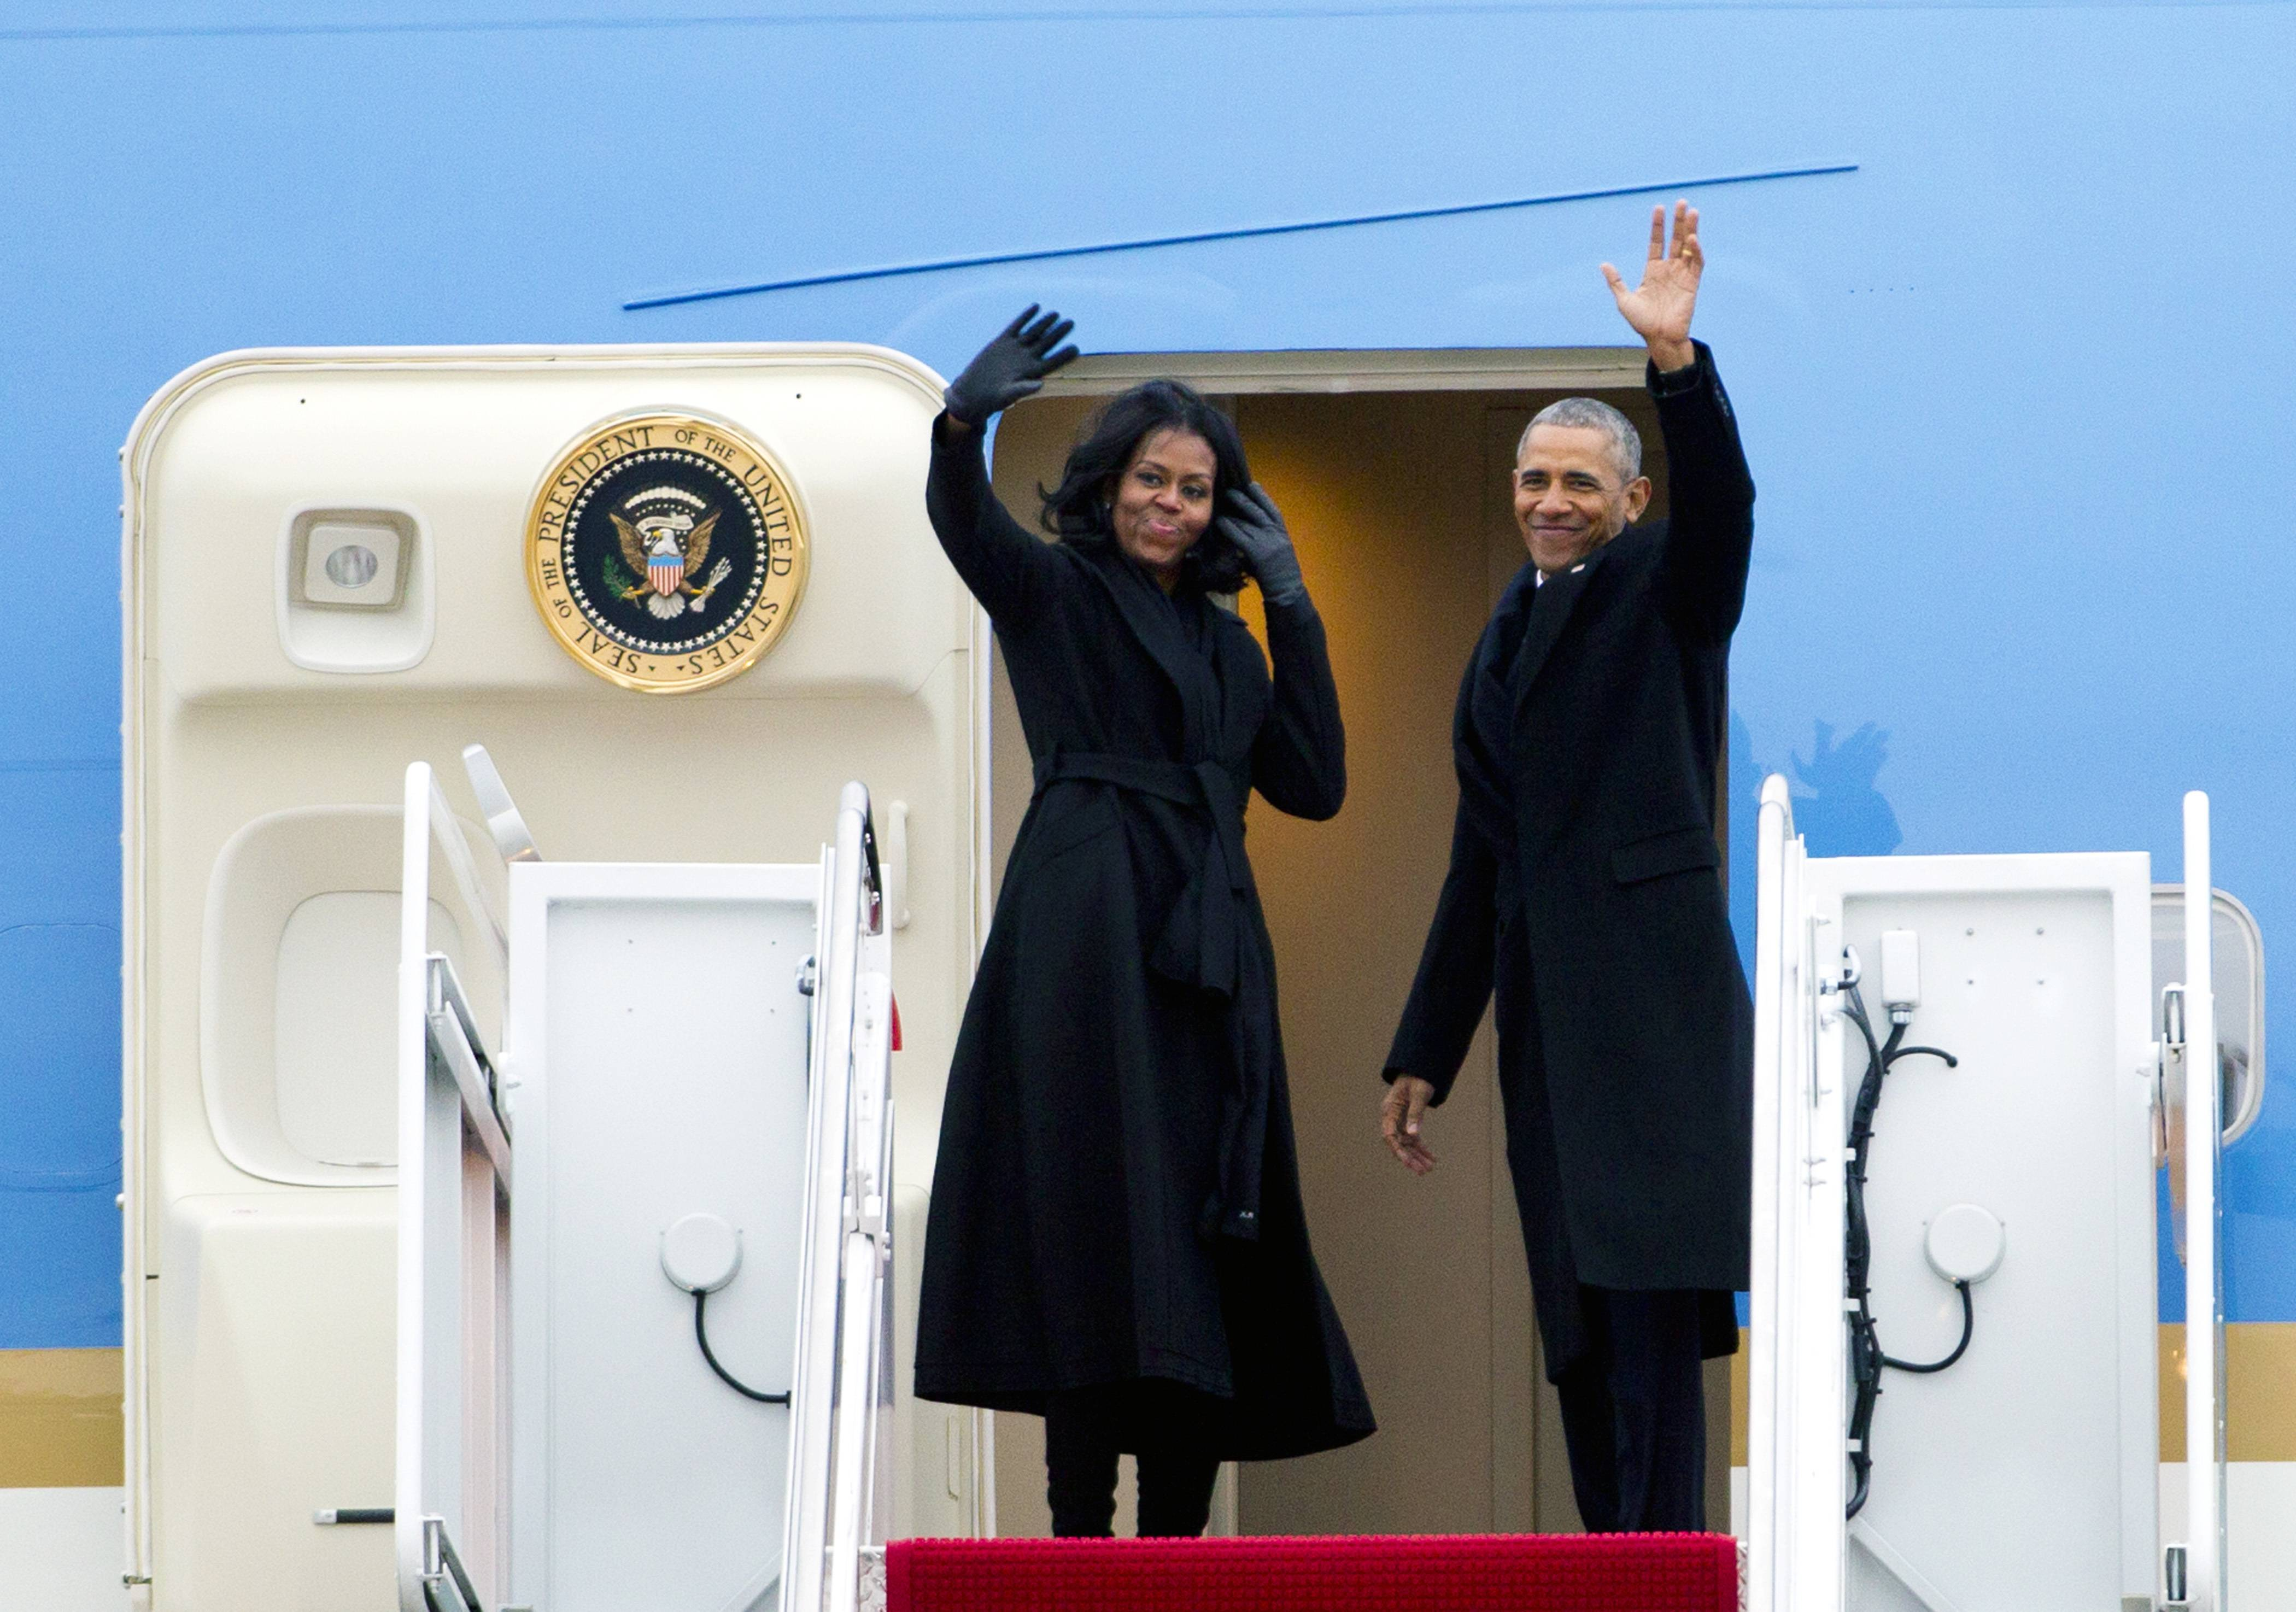 President Barack Obama and first lady Michelle Obama wave from Air Force One at Andrews Air Force Base, Maryland, Tuesday before traveling to Chicago to give his presidential farewell address.